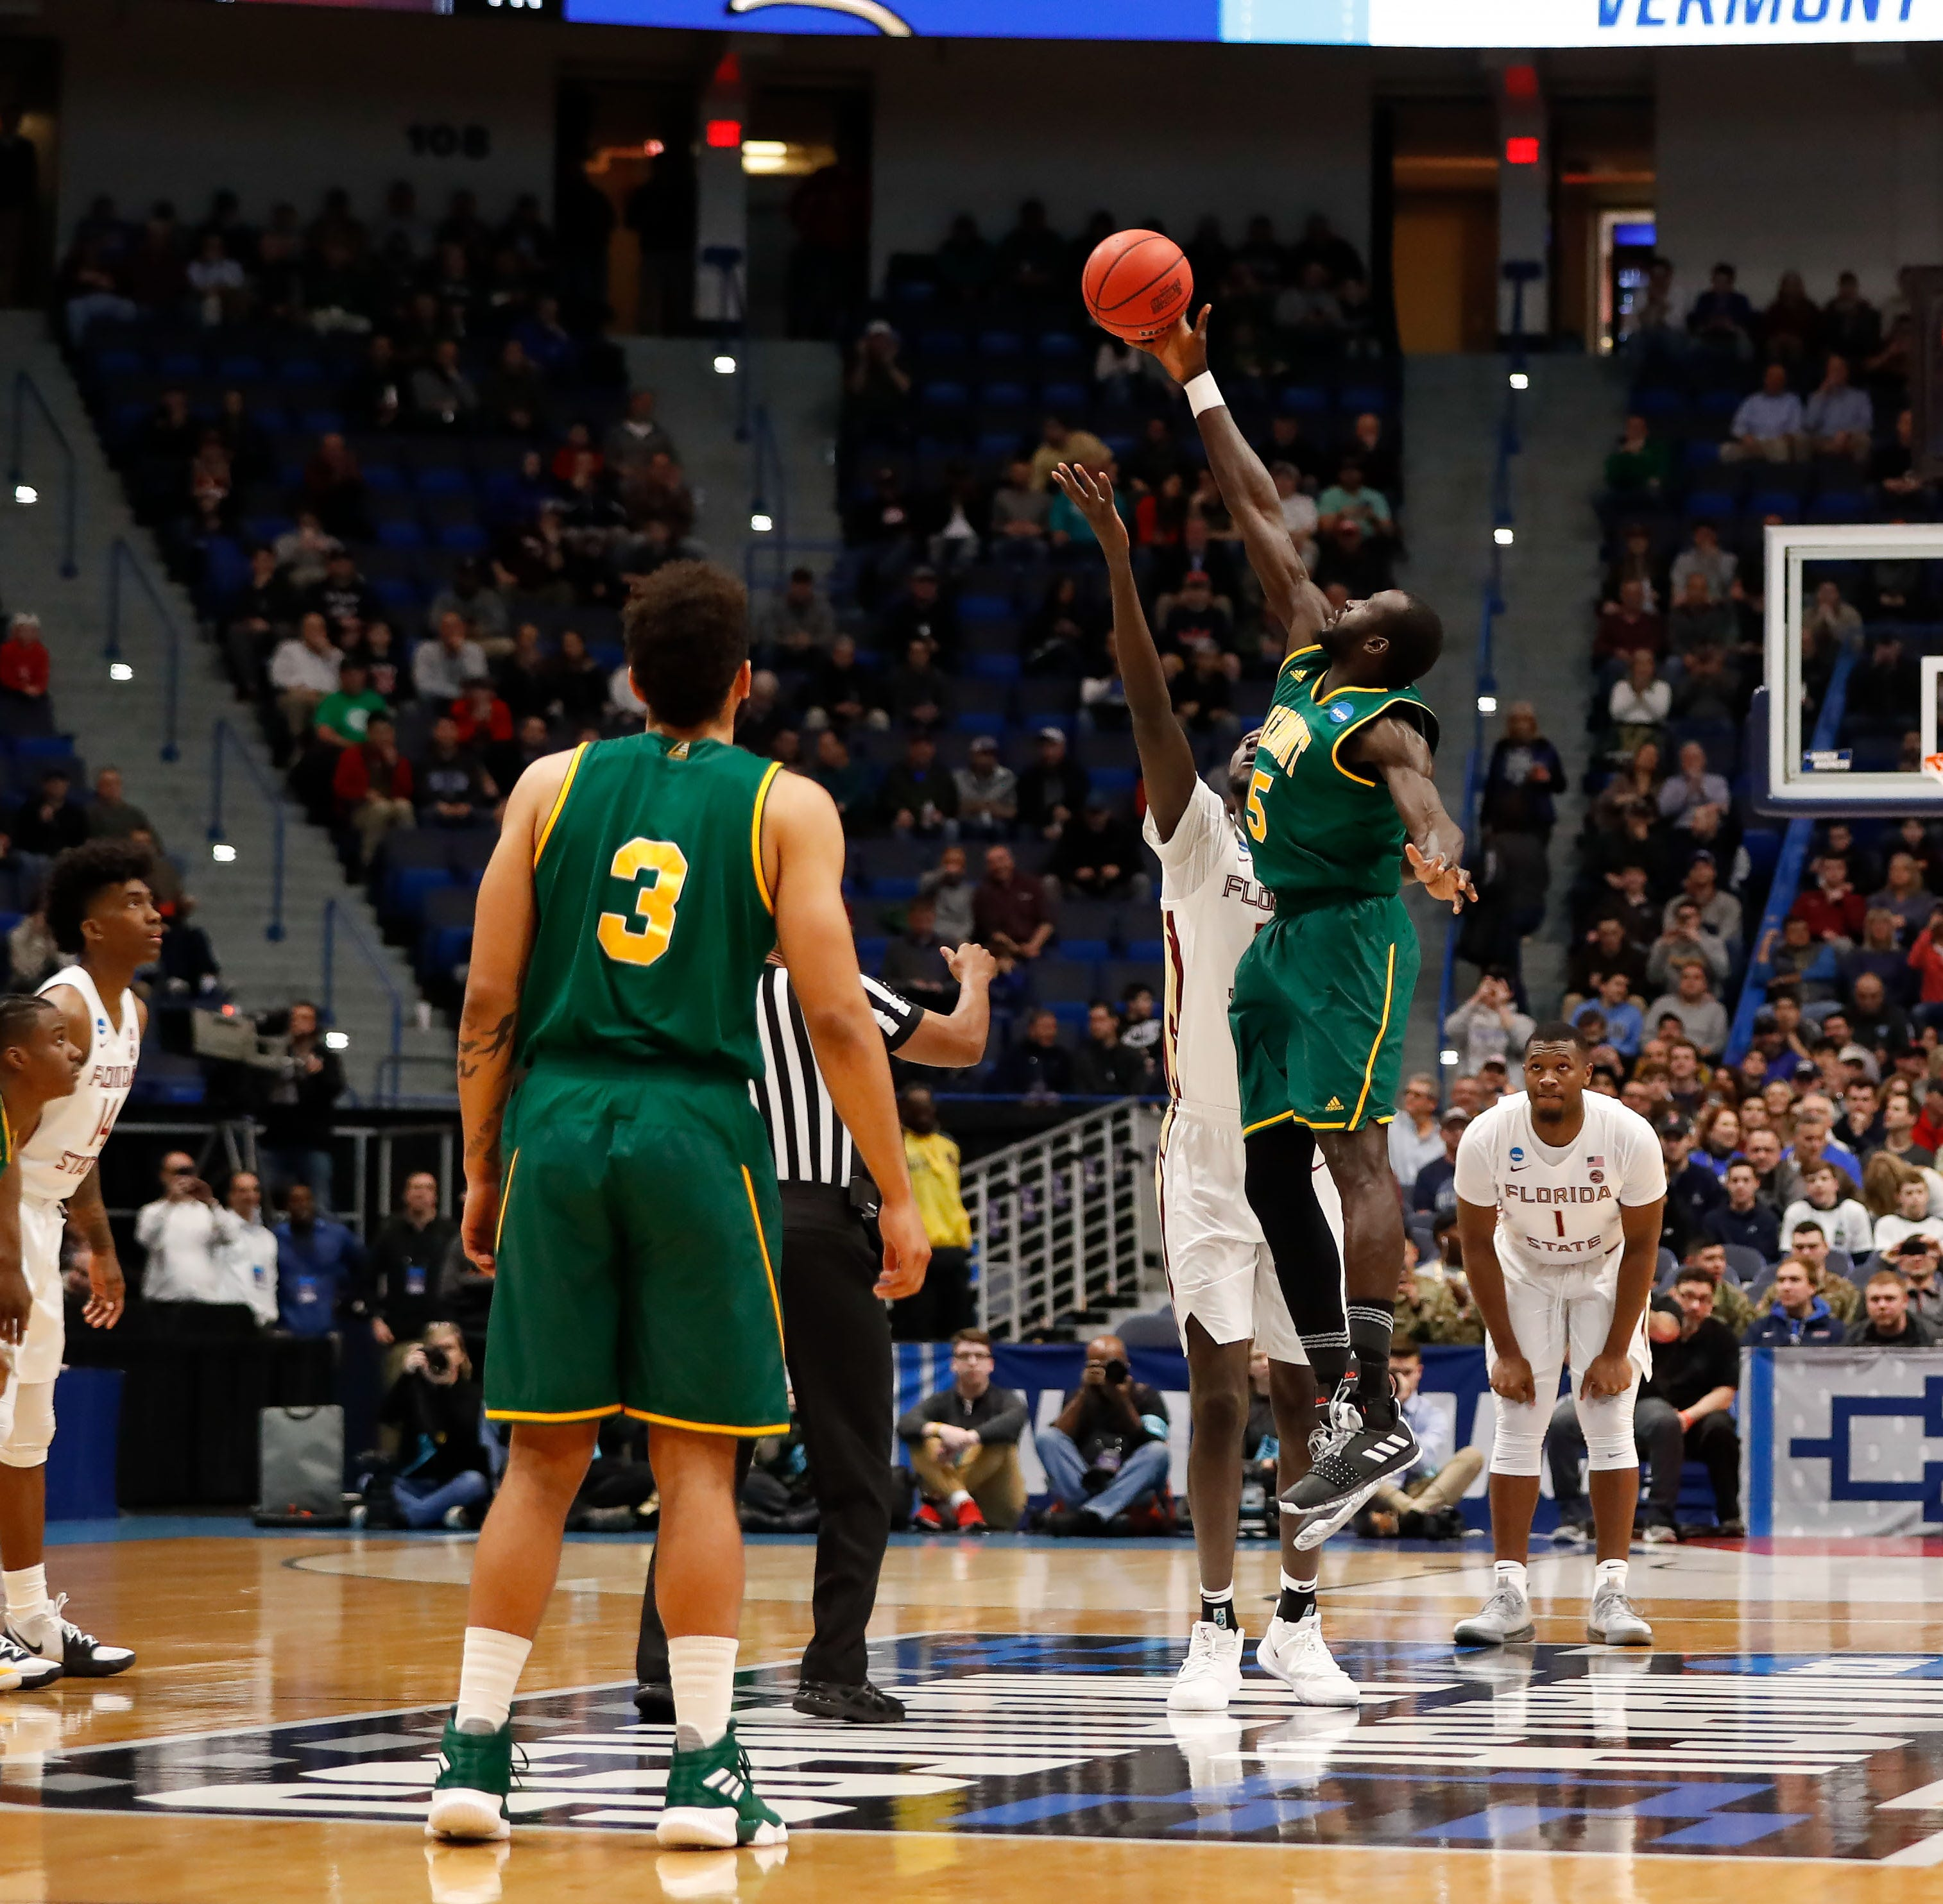 NCAA Tournament: UVM's upset bid falls short in loss to Florida State